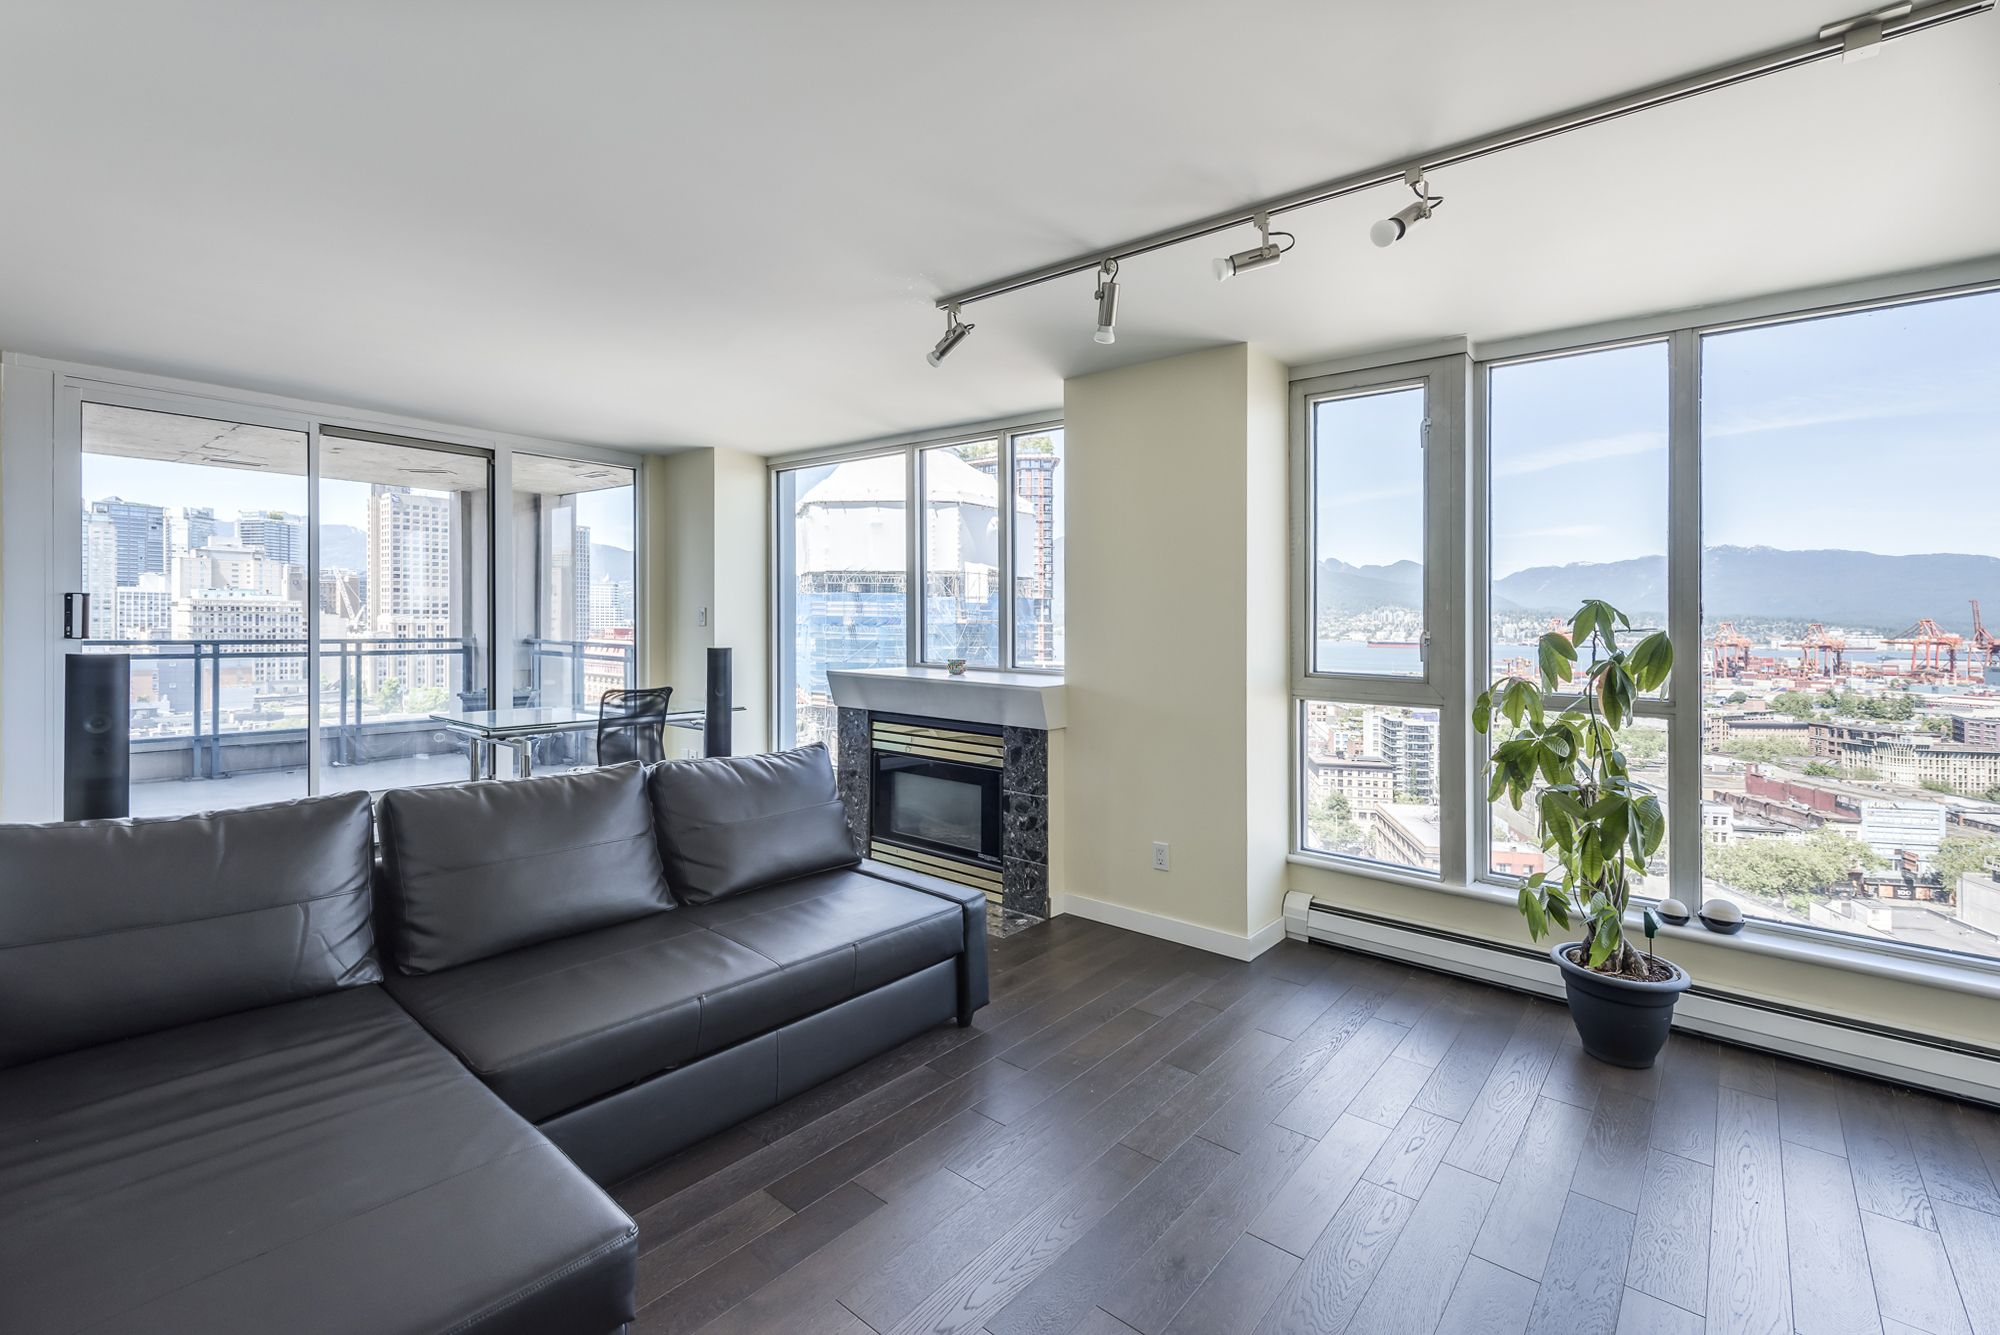 International Village - Crosstown Condo for sale: Paris Place 2 bedroom  Granite Countertop, European Appliance, Hardwood Floors 977 sq.ft. (Listed 2019-06-19)